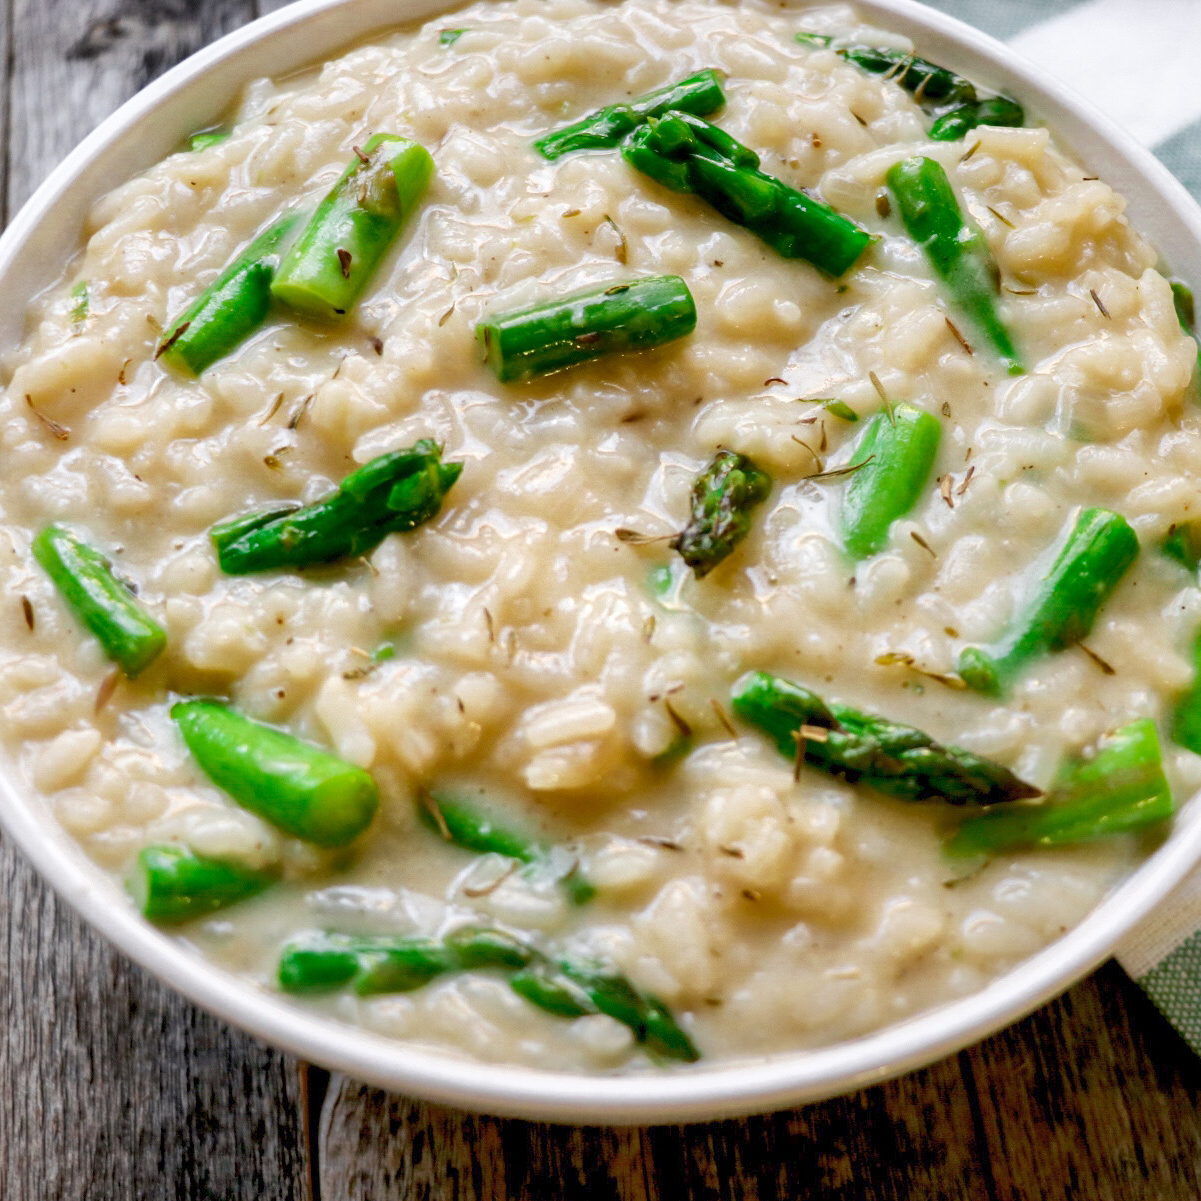 asparagus risotto in a white bowl